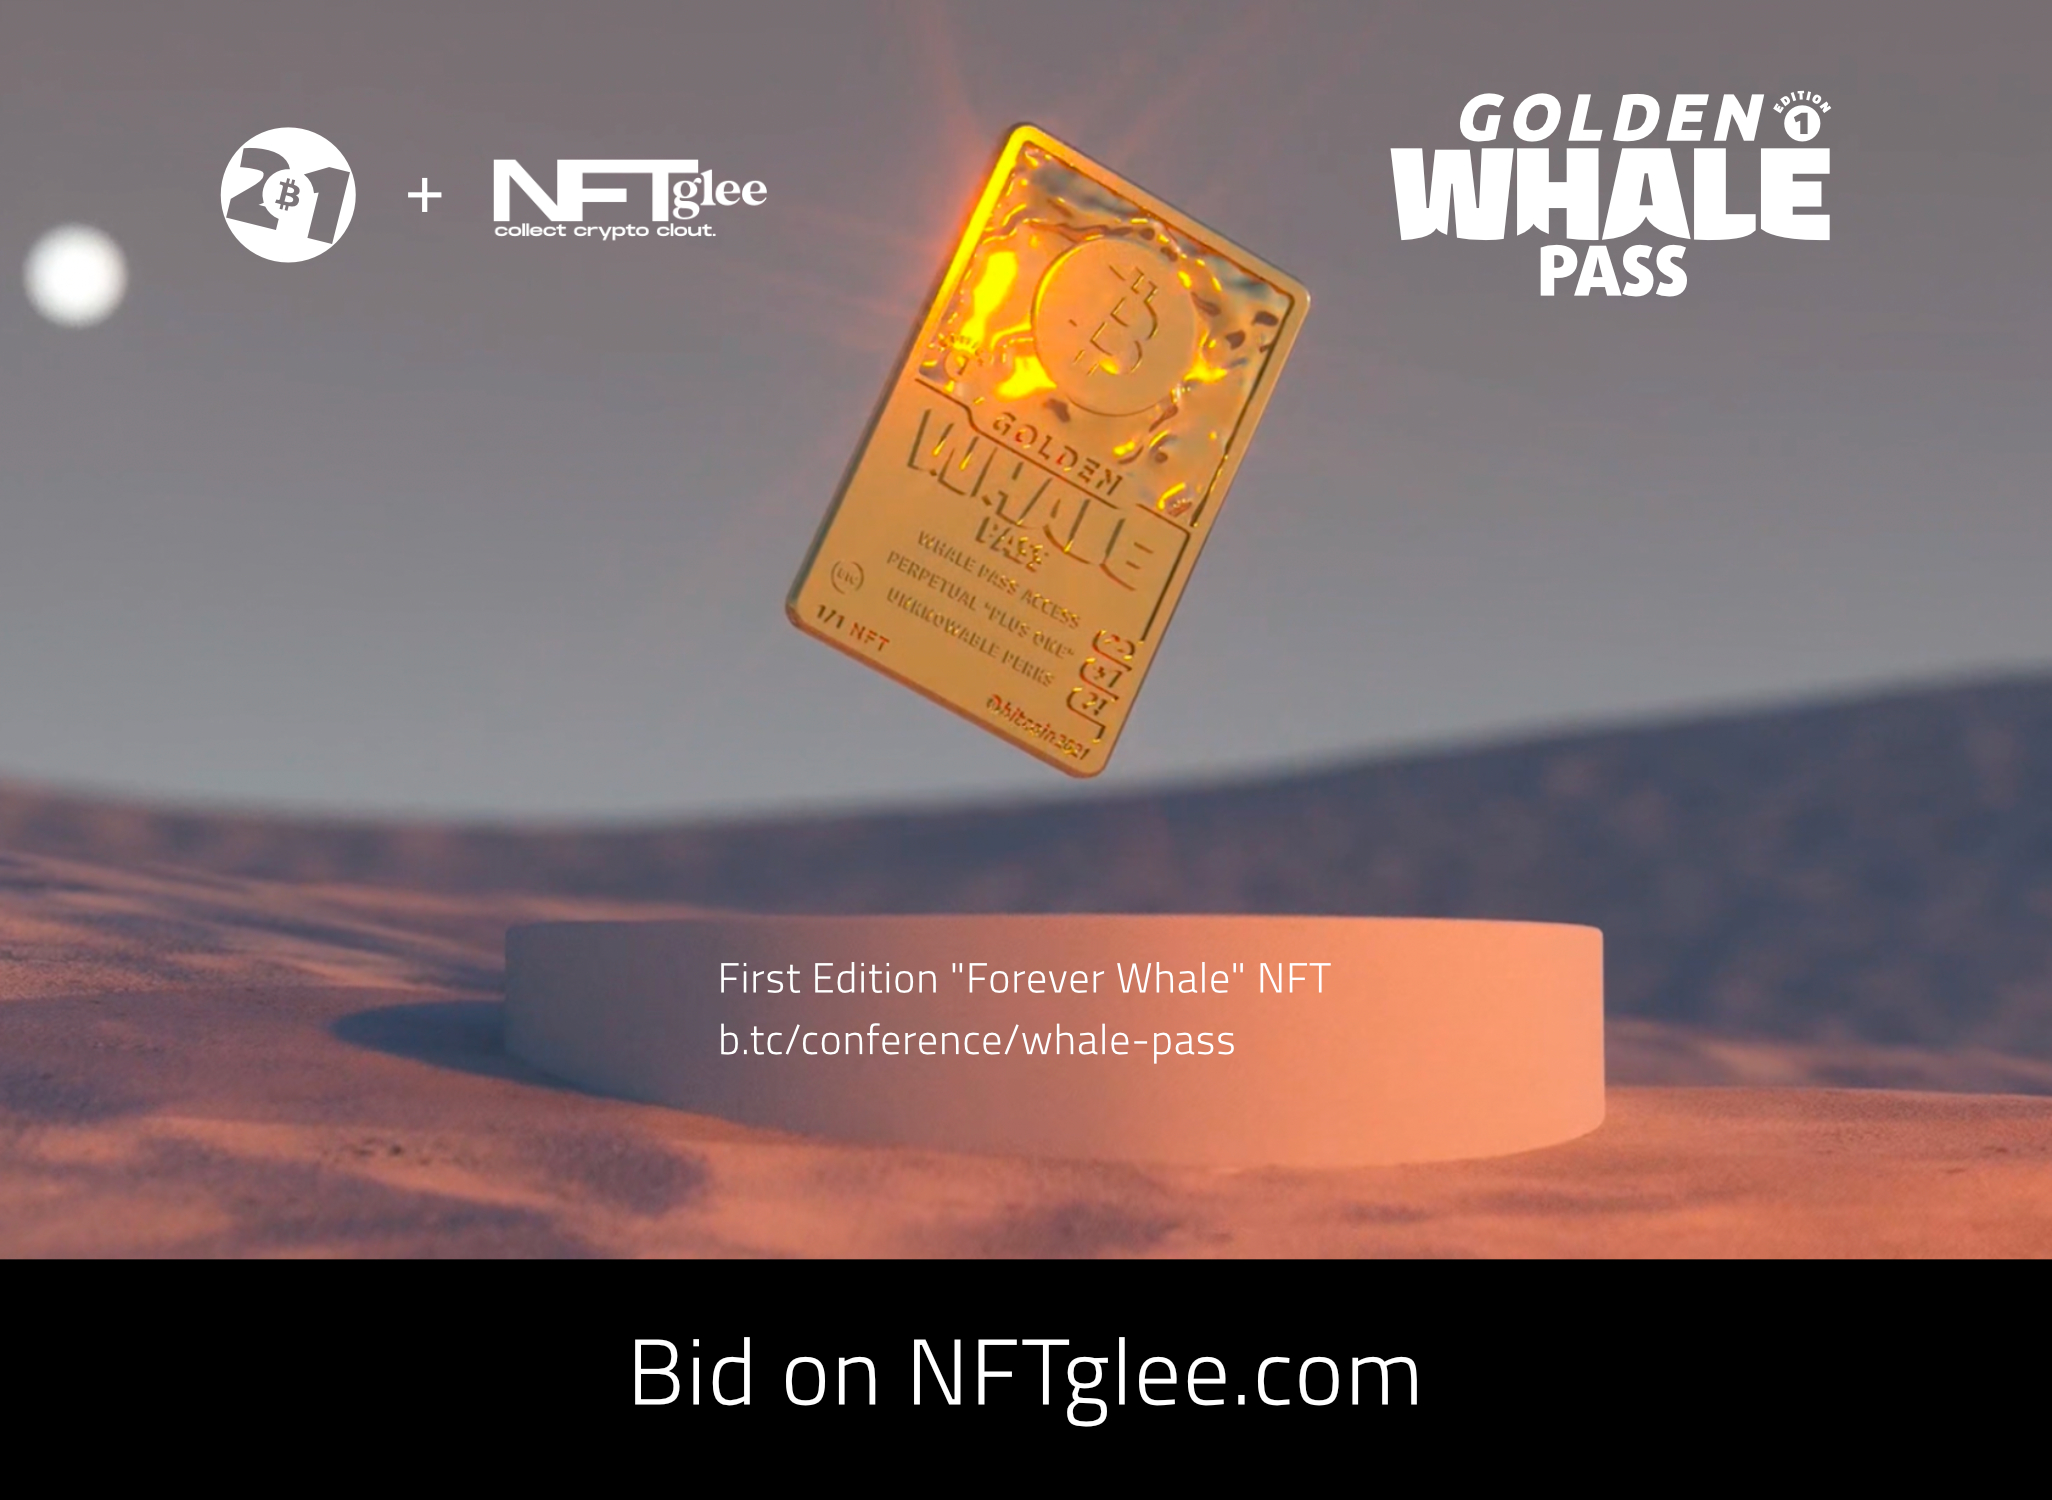 Golden Whale Pass #ForeverWhale NFT